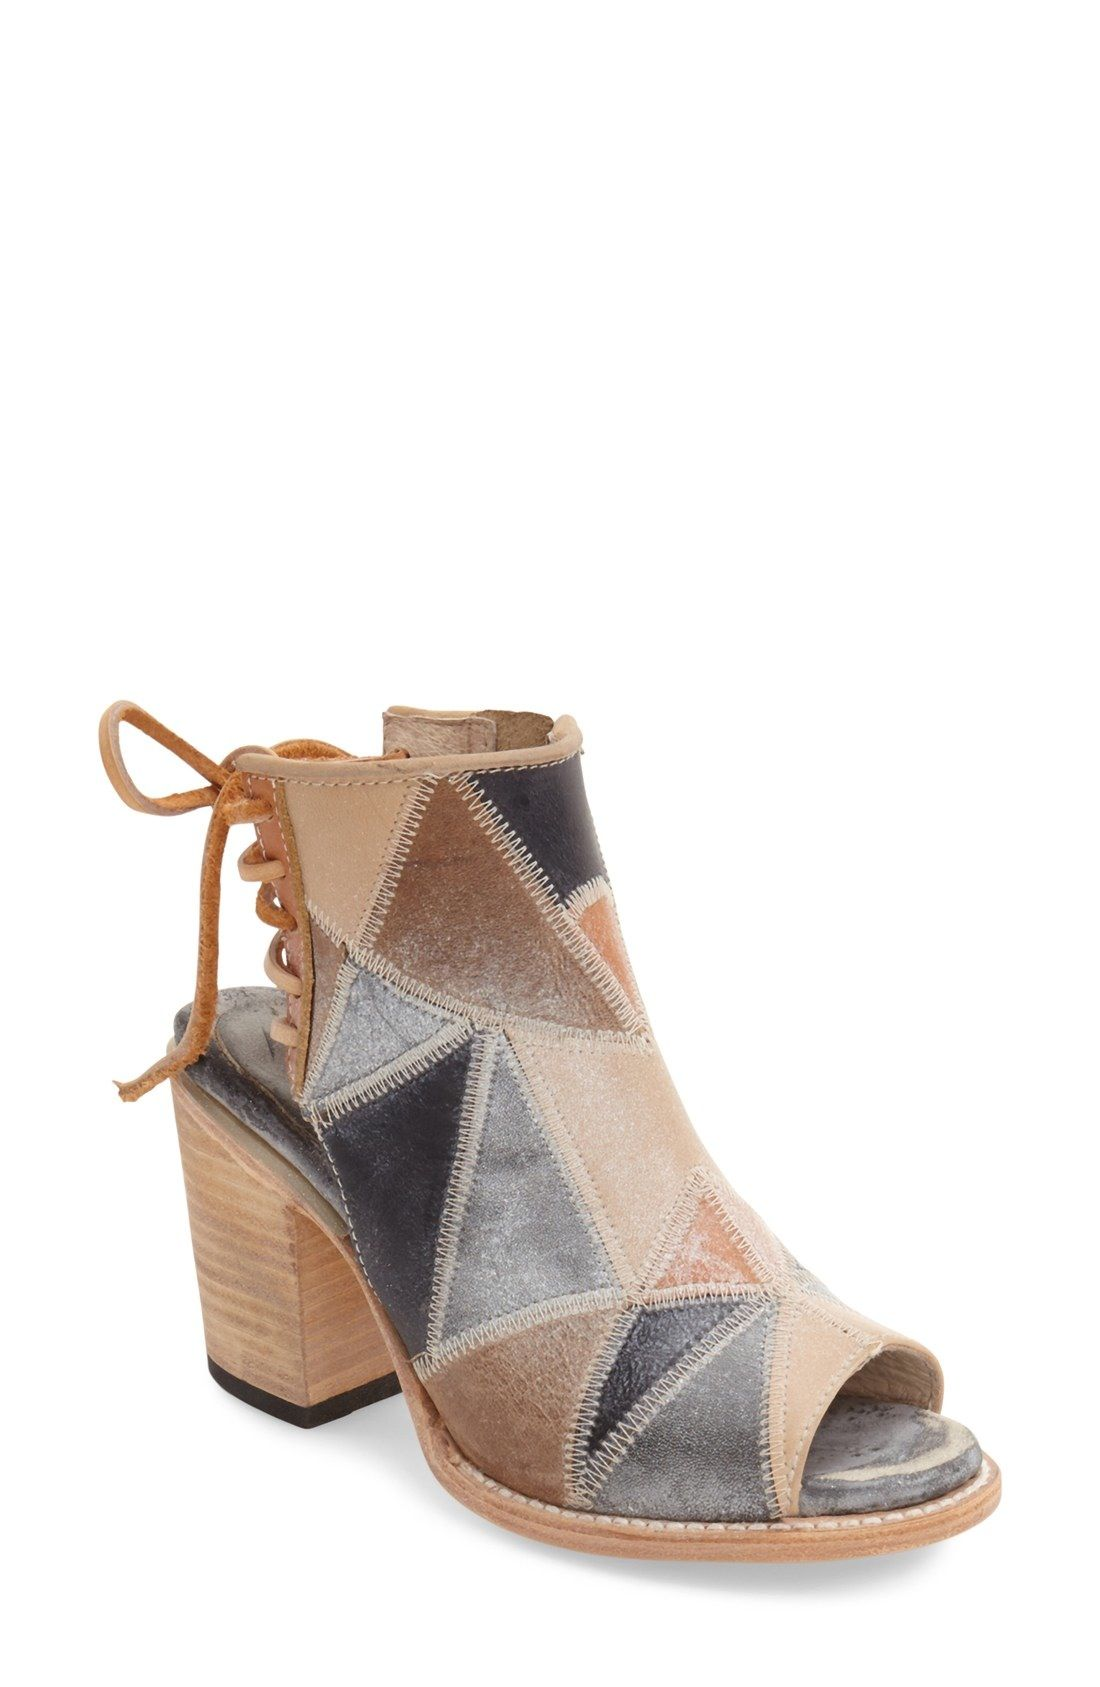 Freebird by Steven 'Bay' Patchwork Sandal (Women) available at #Nordstrom